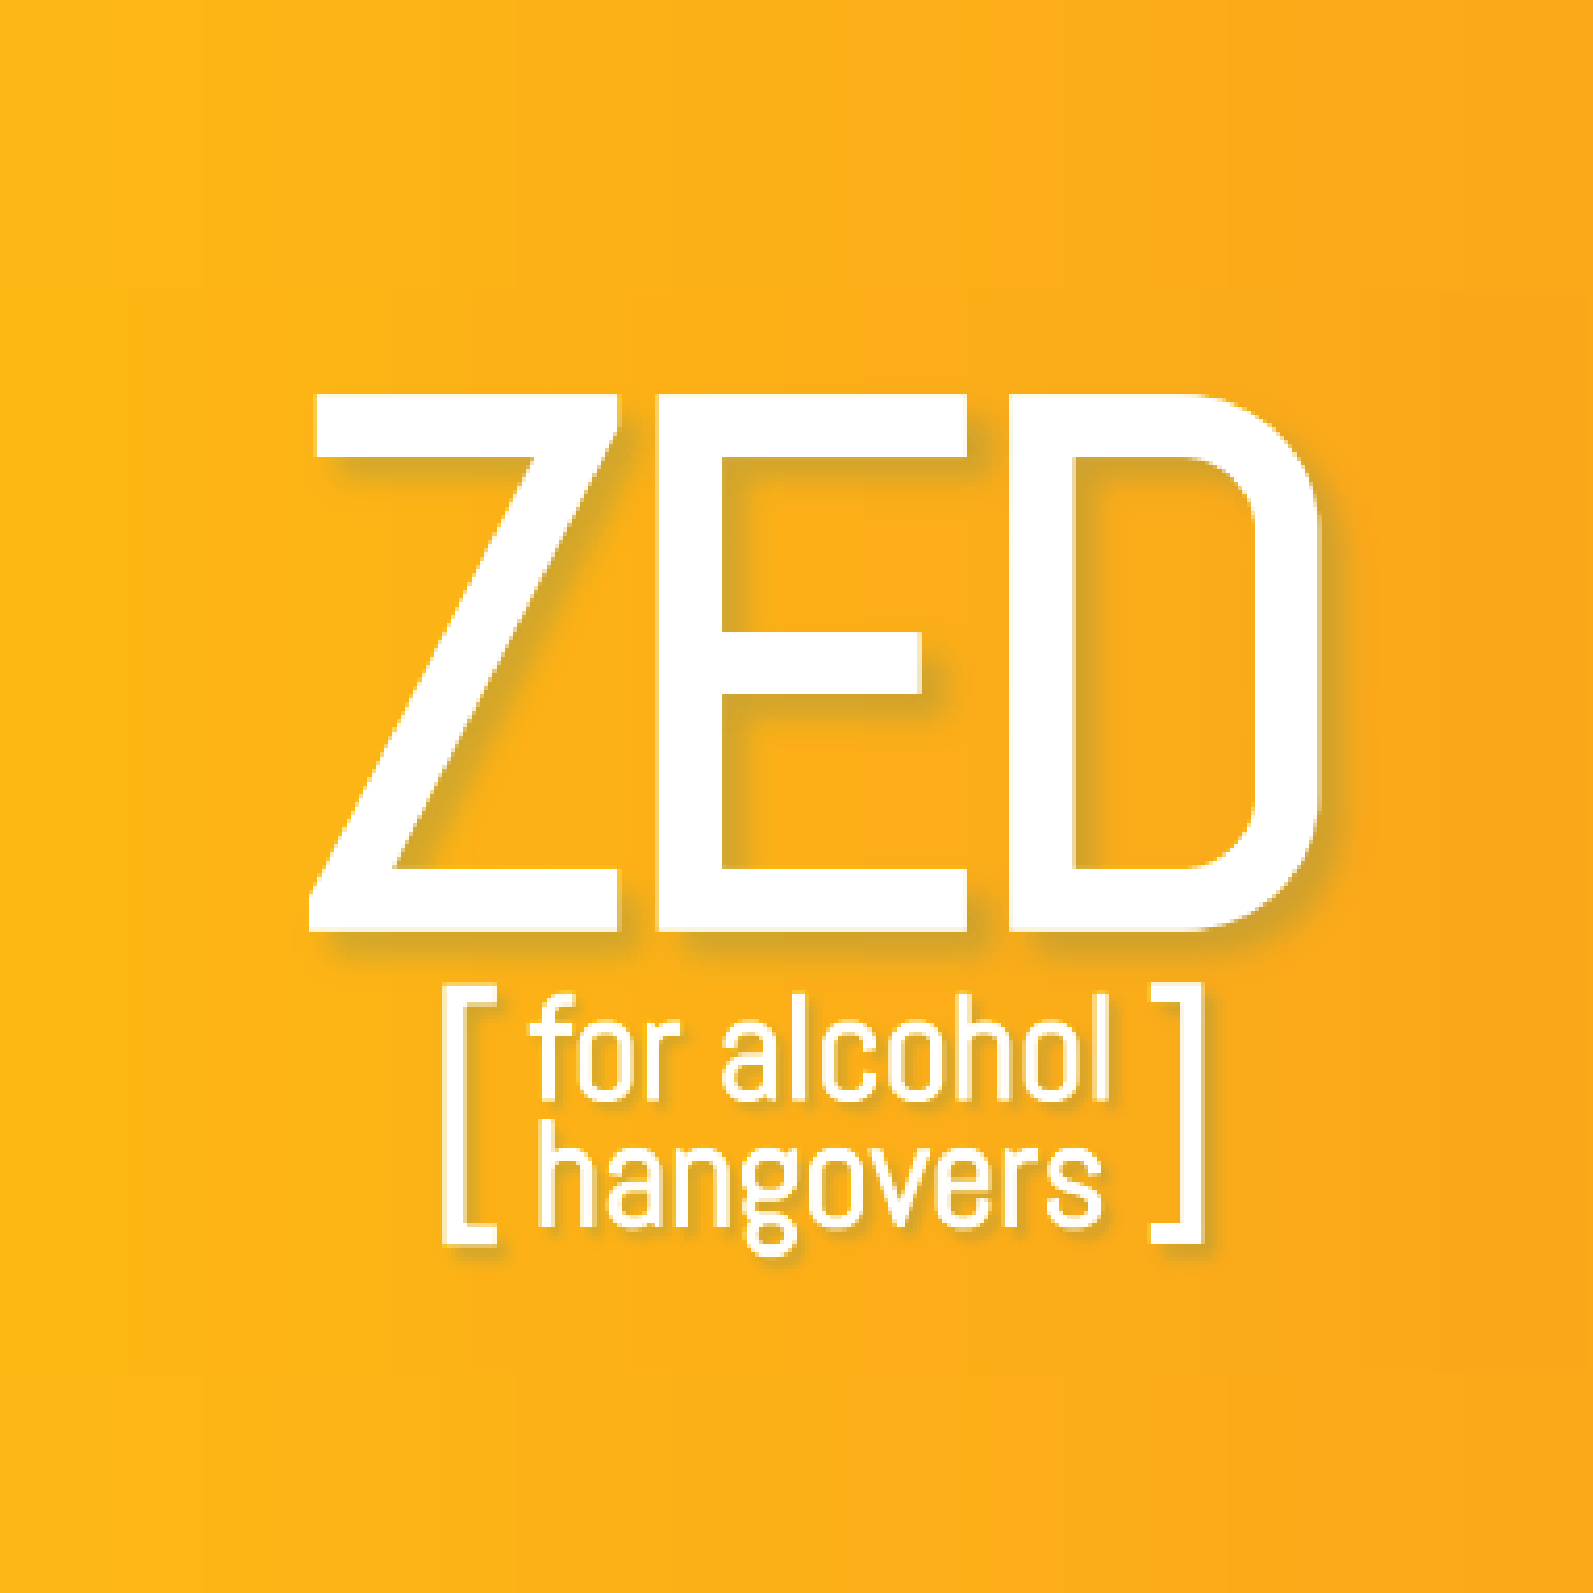 ZED is a tasty 100 mL all-natural beverage that prevents hangover symptoms for the alcohol consumer who doesn't want to suffer pain or lose productivity the morning after.